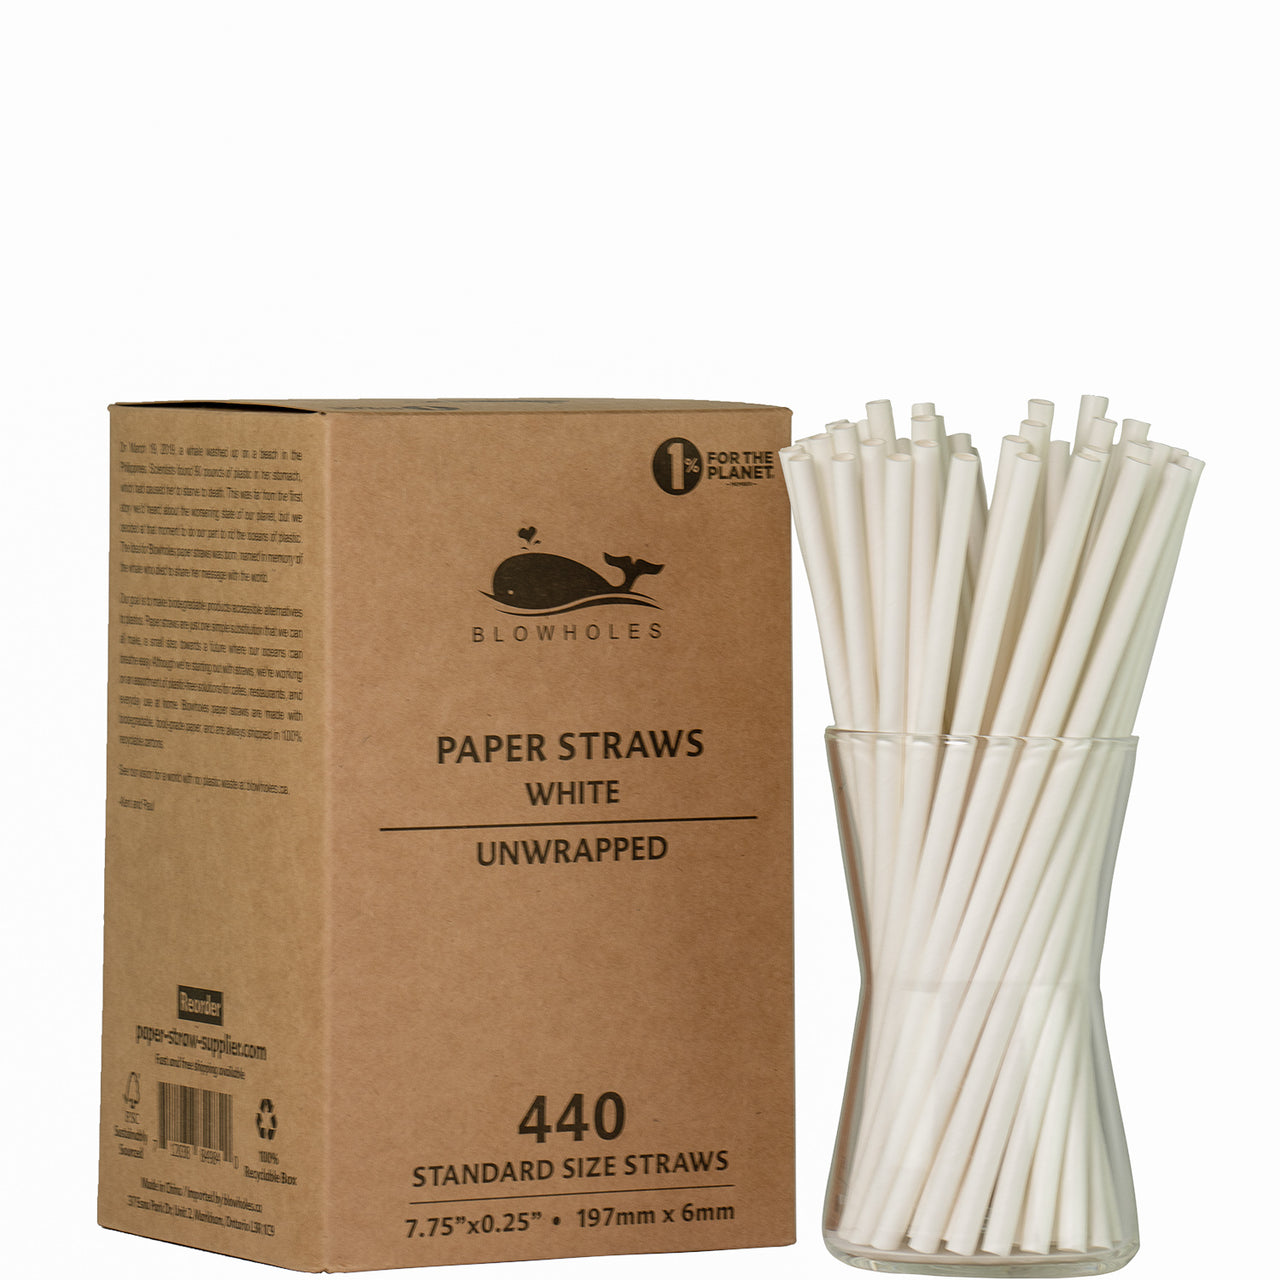 Blowholes Standard Size Paper Straws - NOT Individually Wrapped, Nov Promo - 20% Off